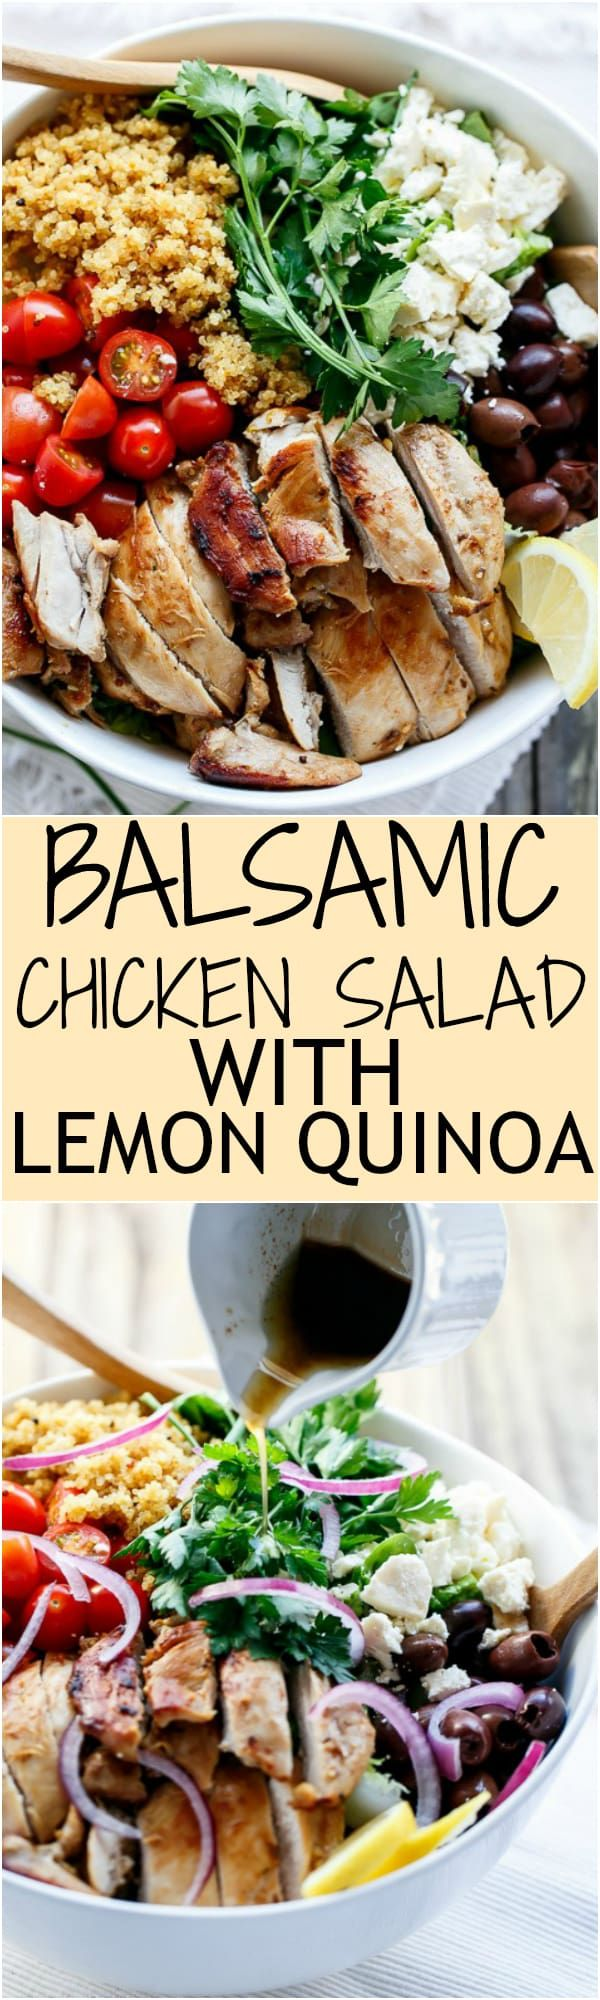 Balsamic Chicken Salad with Lemon Quinoa Collage | https://cafedelites.com